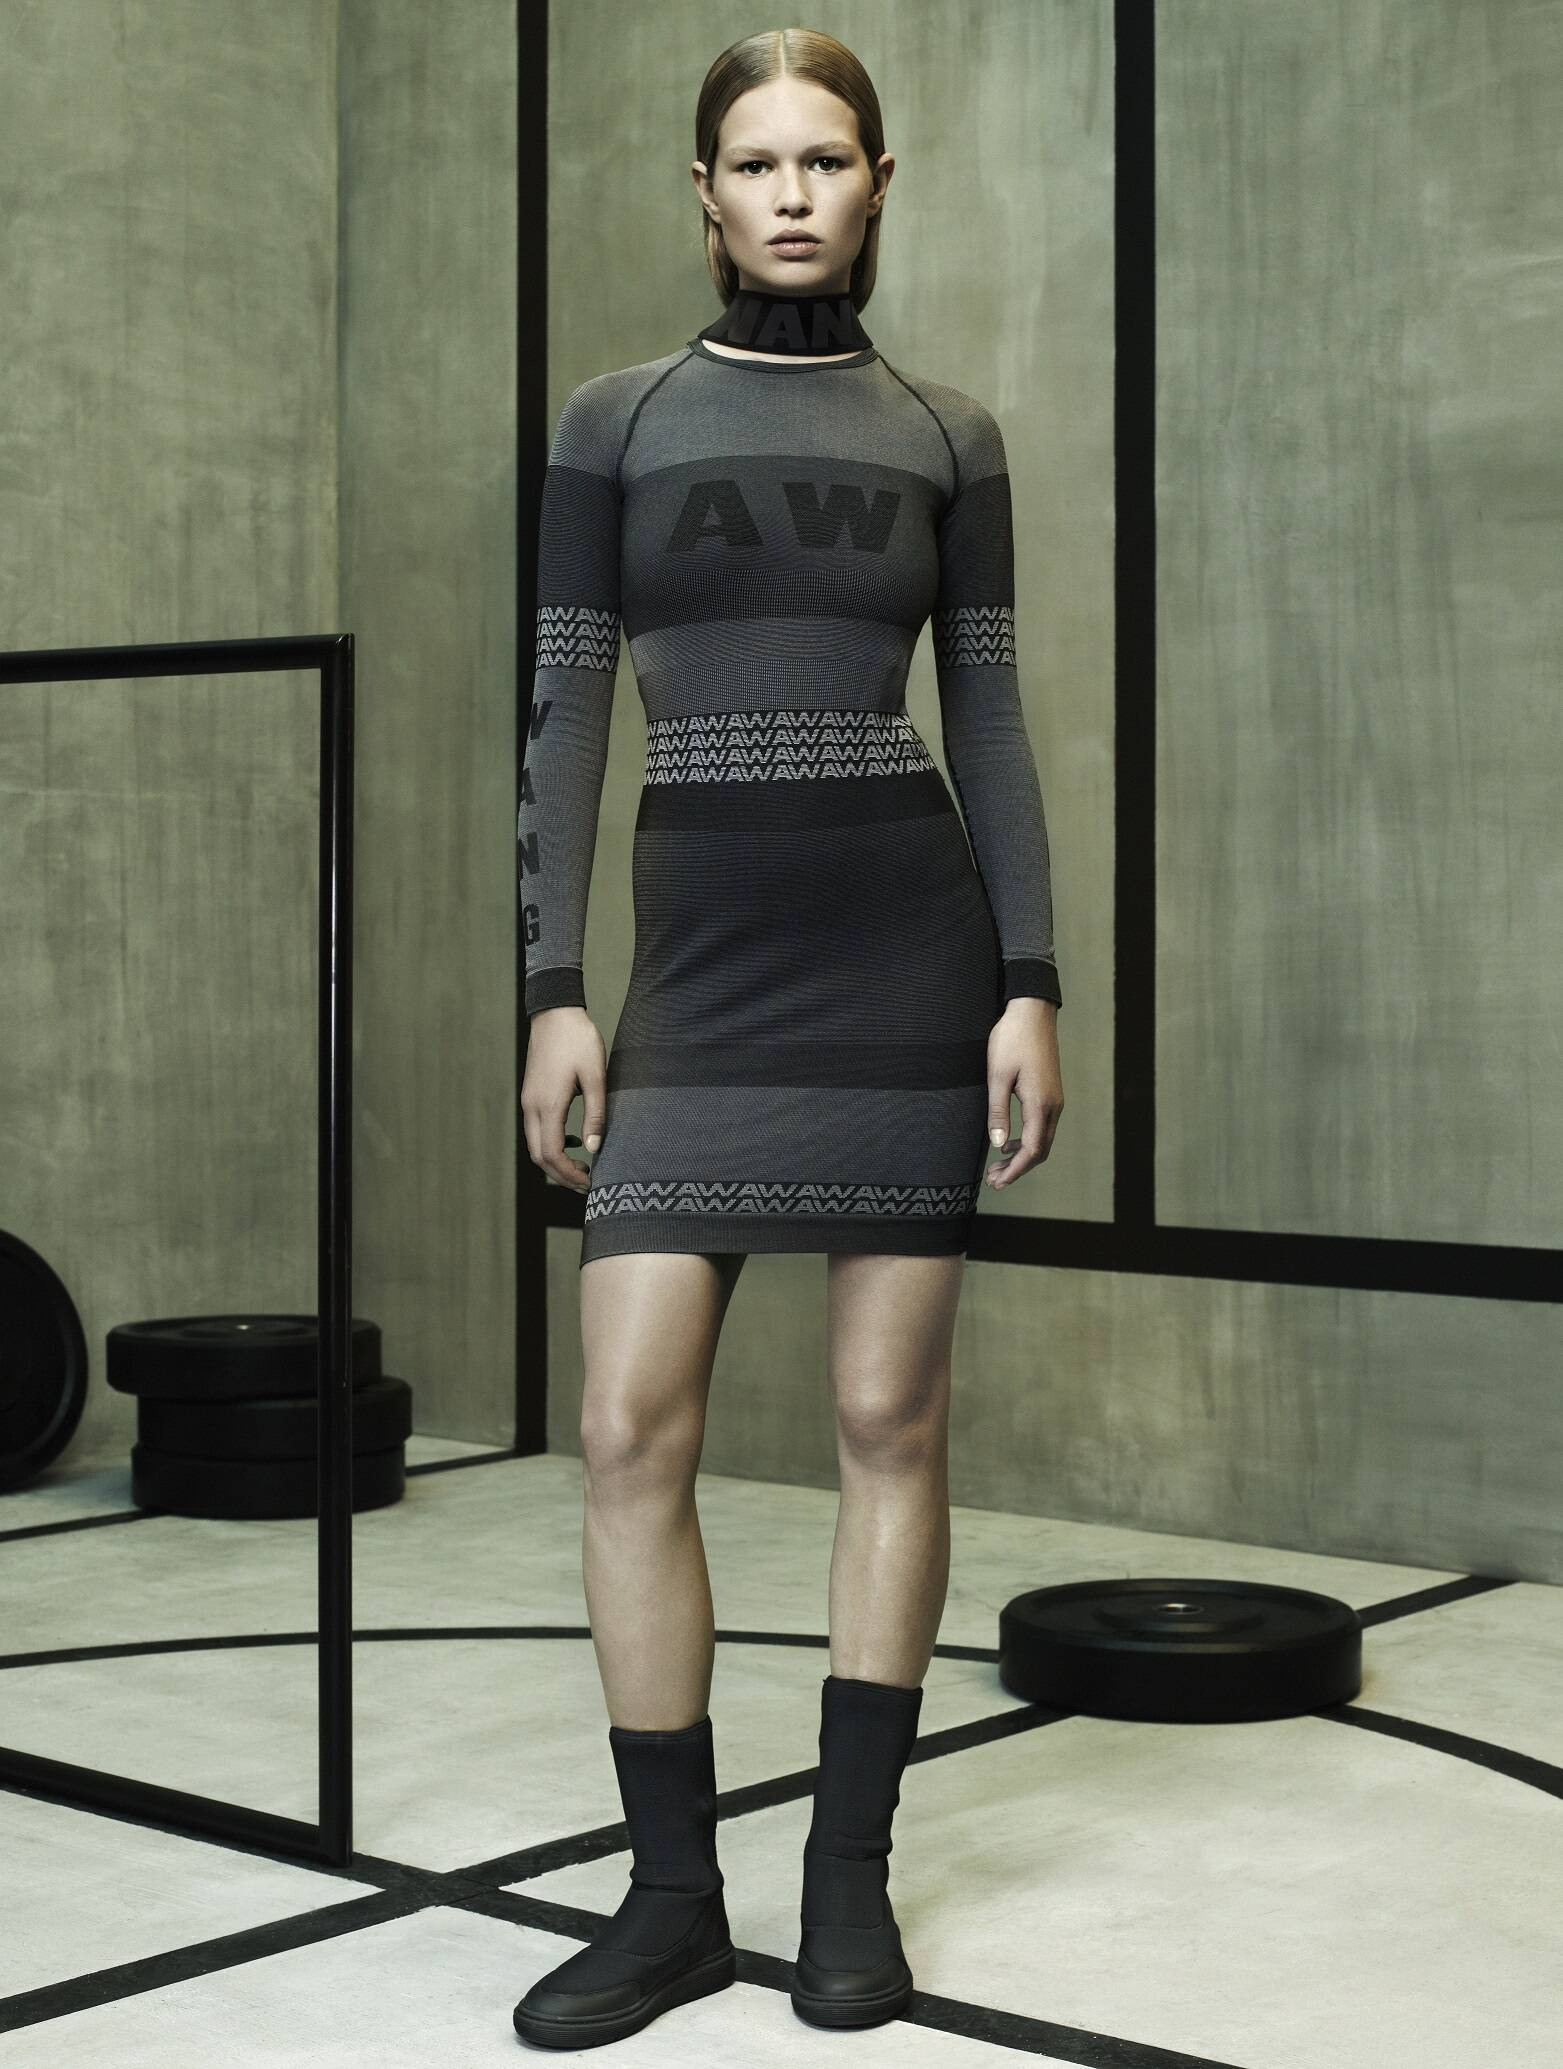 Alexander Wang for H&M Lookbook